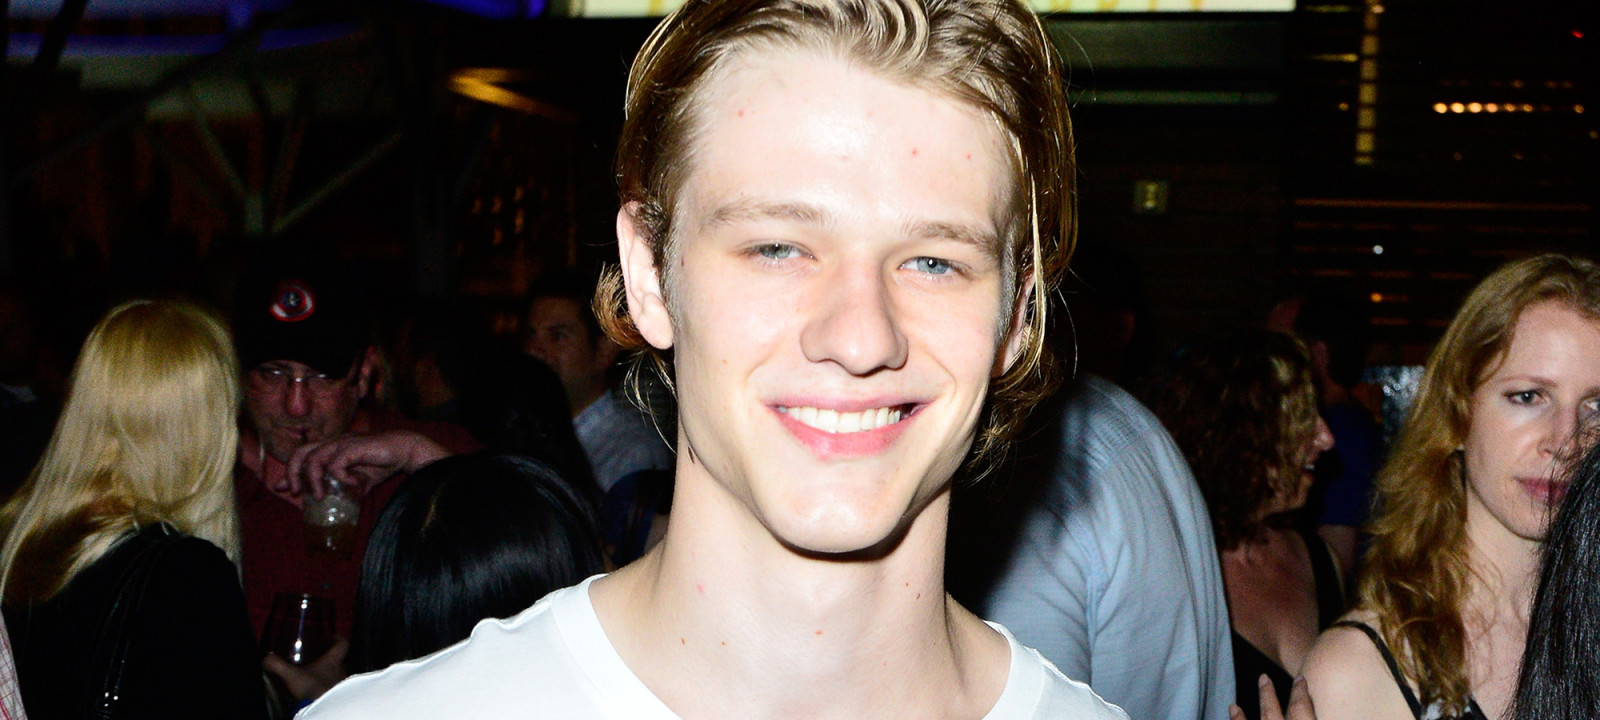 anglo_2000x1125_lucastill_macgyver